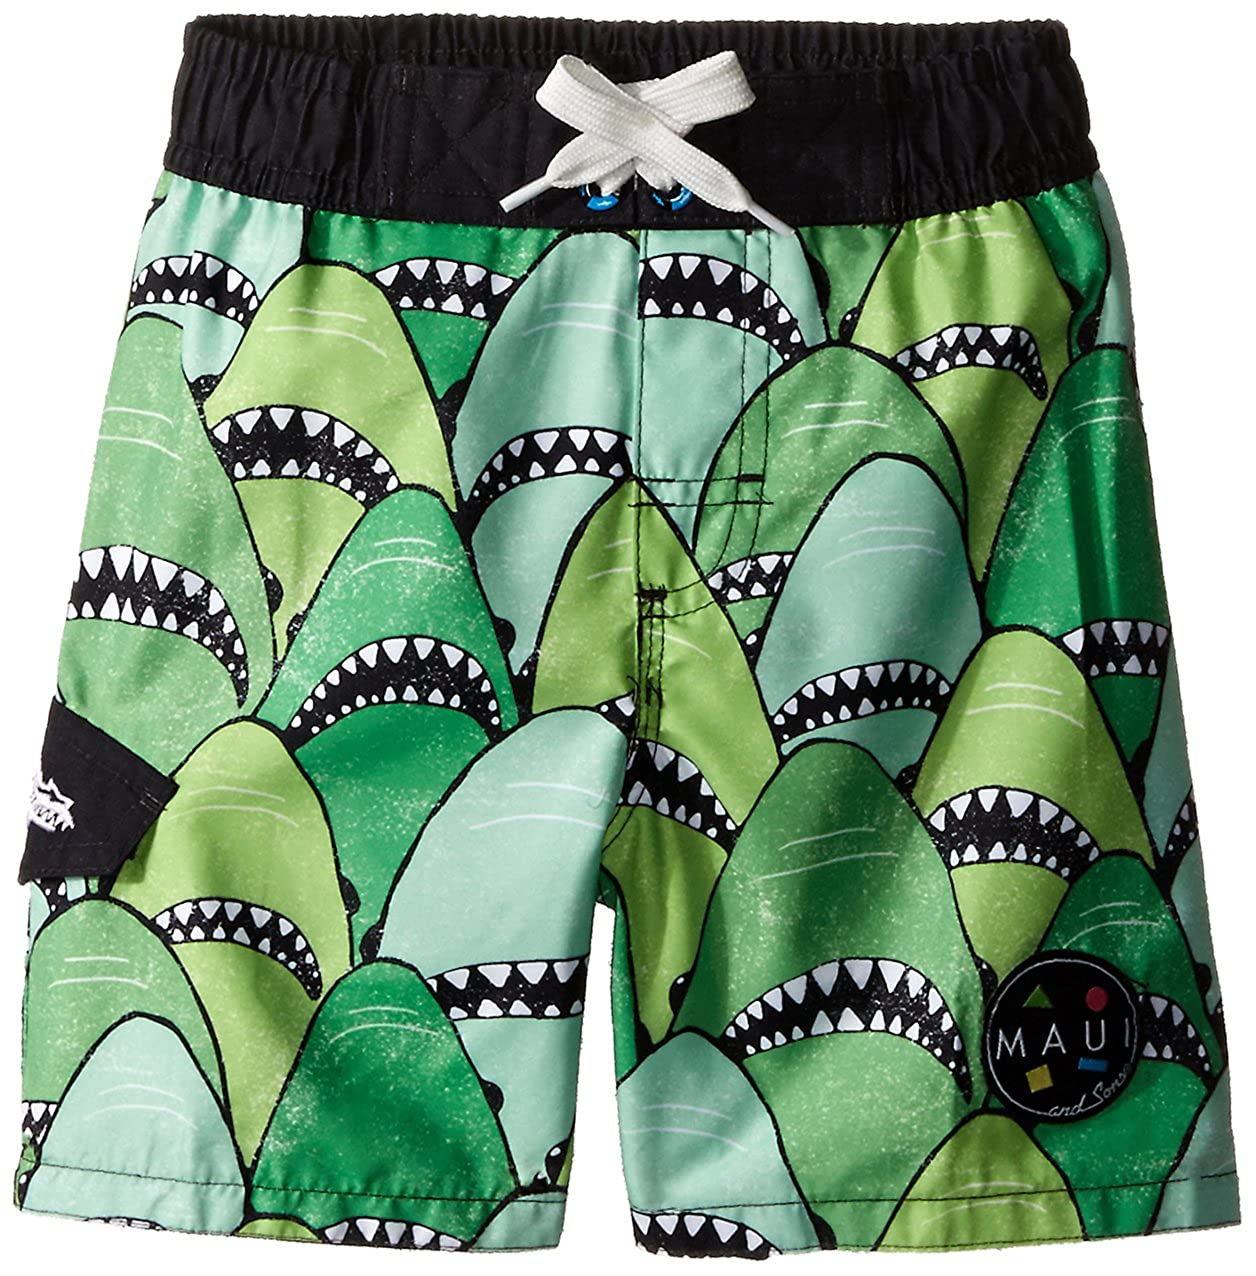 Maui & Sons Boys' Green Swim Trunk With Shark Print Dreamwave Children' s Apparel 304MZ